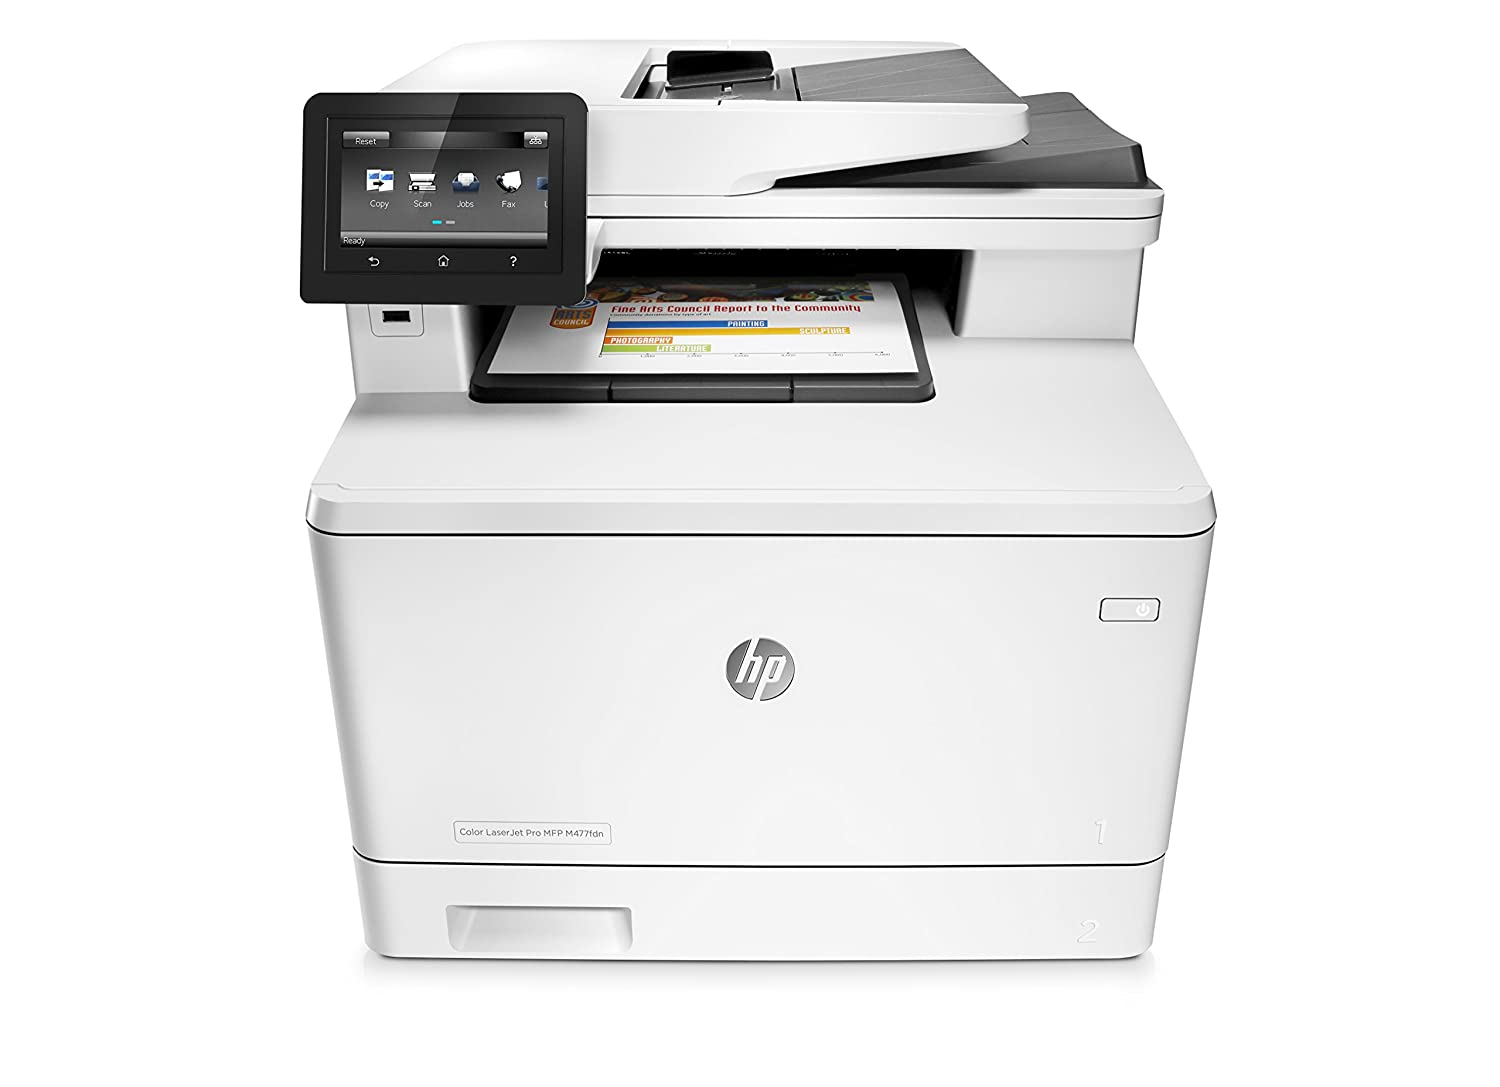 Amazon.com: HP Laserjet Pro M477fdn Printer and Black Toner Bundle:  Electronics